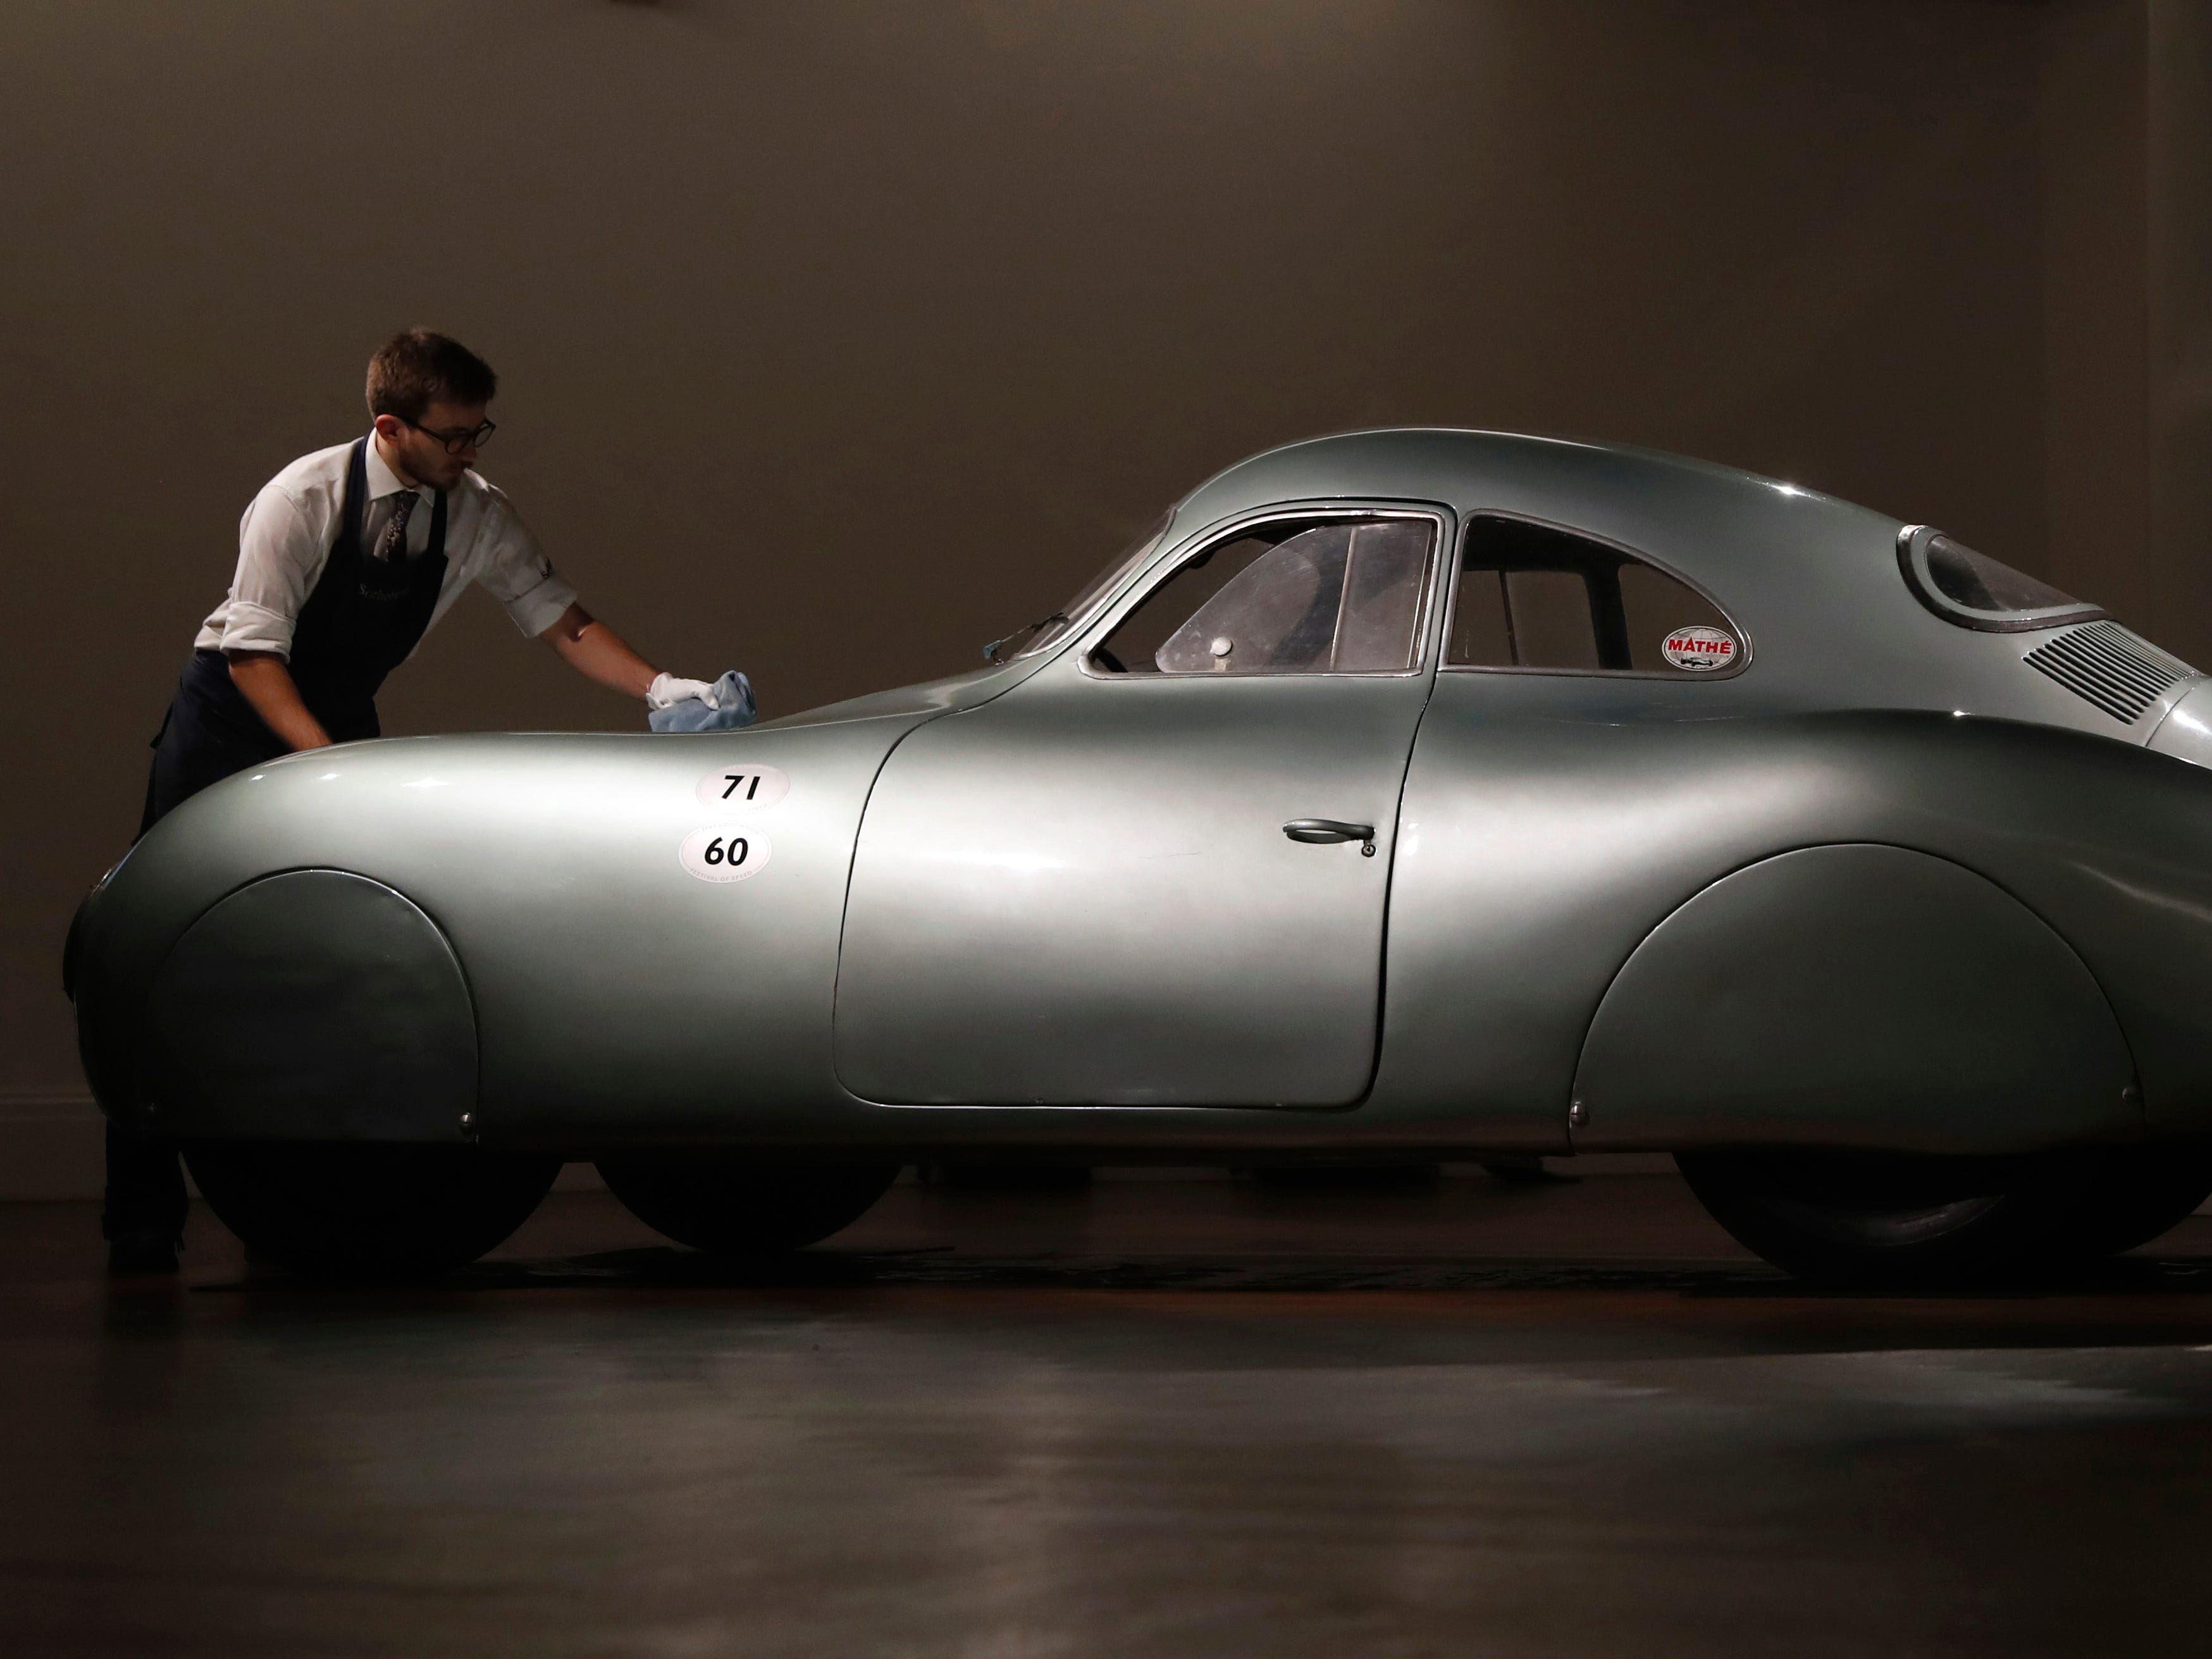 A 1939 Porsche Type 64, the oldest car to wear a Porsche badge and the personal car of German car designer and manufacturer Ferdinand and Ferry Porsche on display during a press preview at Sotheby's auction house in London, May 21, 2019. This is the only surviving example of the Type 64 Porsche which is a direct ancestor of the iconic Porsche 365. The car will go on sale at an auction in Monterey Ca. in August and is expected to sell at around $20 million.